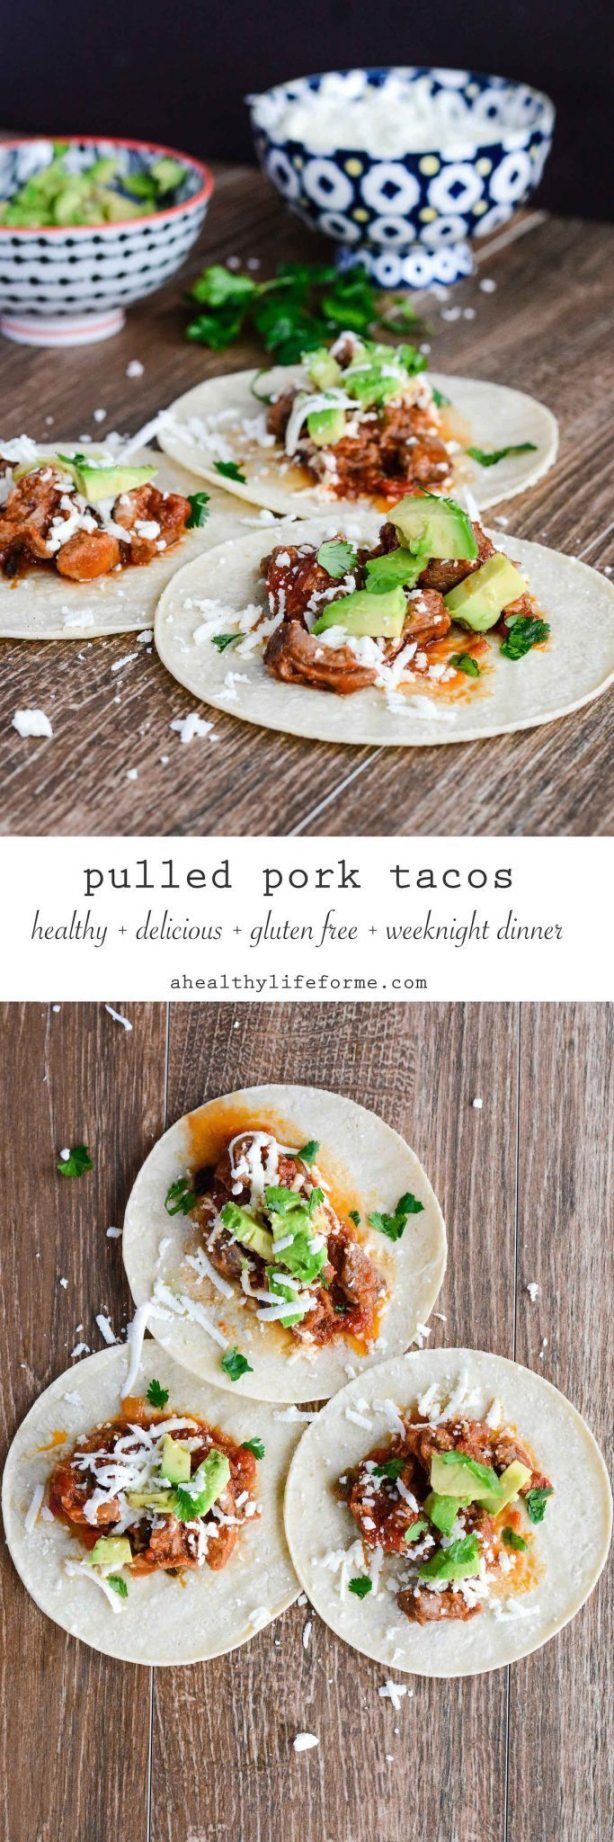 Pulled Pork Tacos Gluten Free Weeknight Dinner Recipe | ahealthylifeforme.com